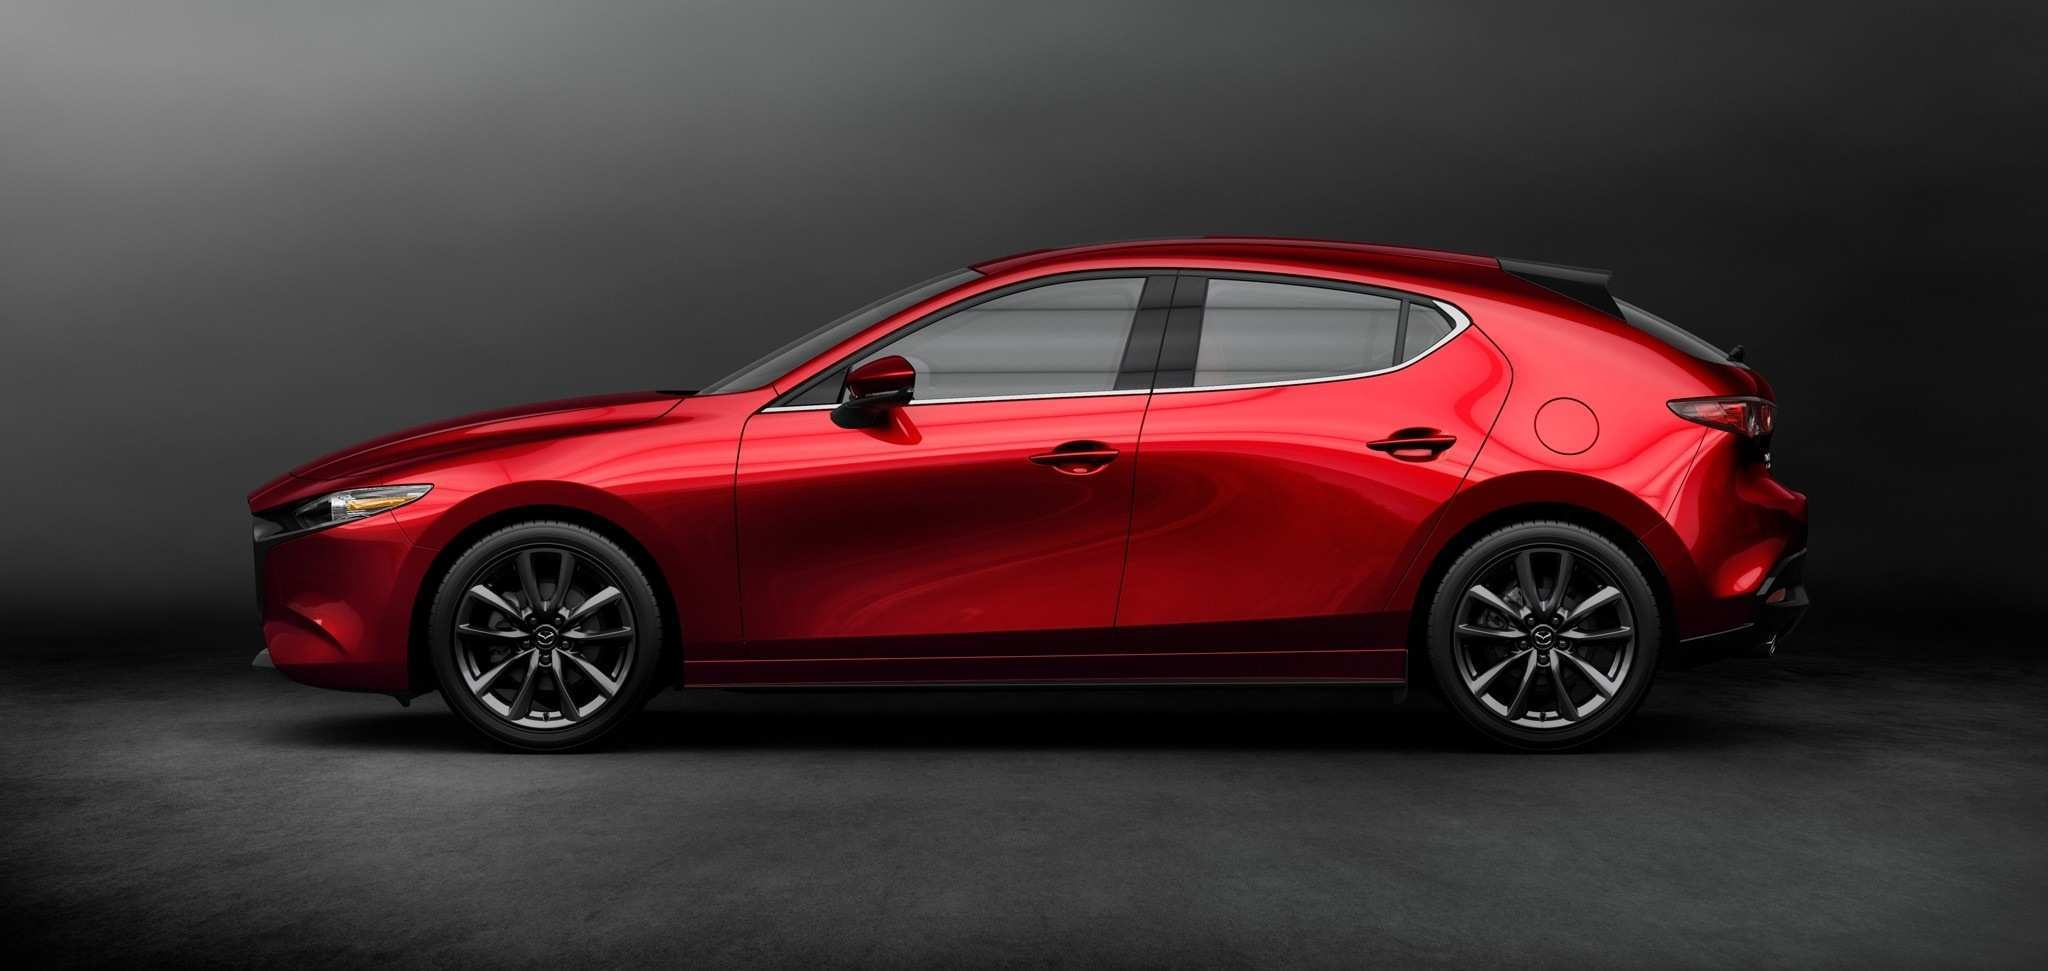 41 The Best 2020 Mazdaspeed 3 Wallpaper